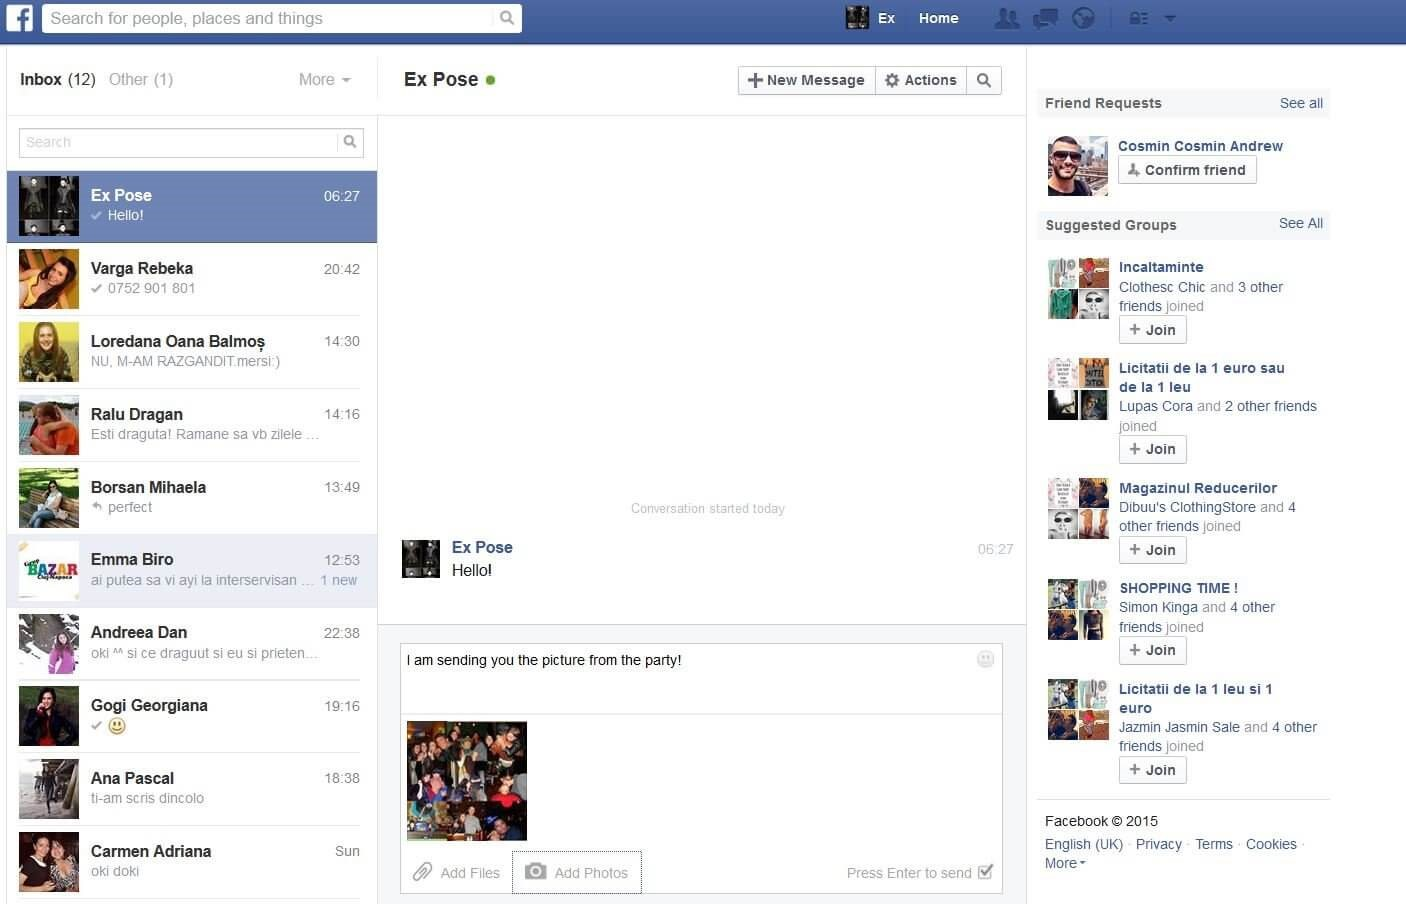 Tips on How to Send Messages/Photos/Videos on Facebook